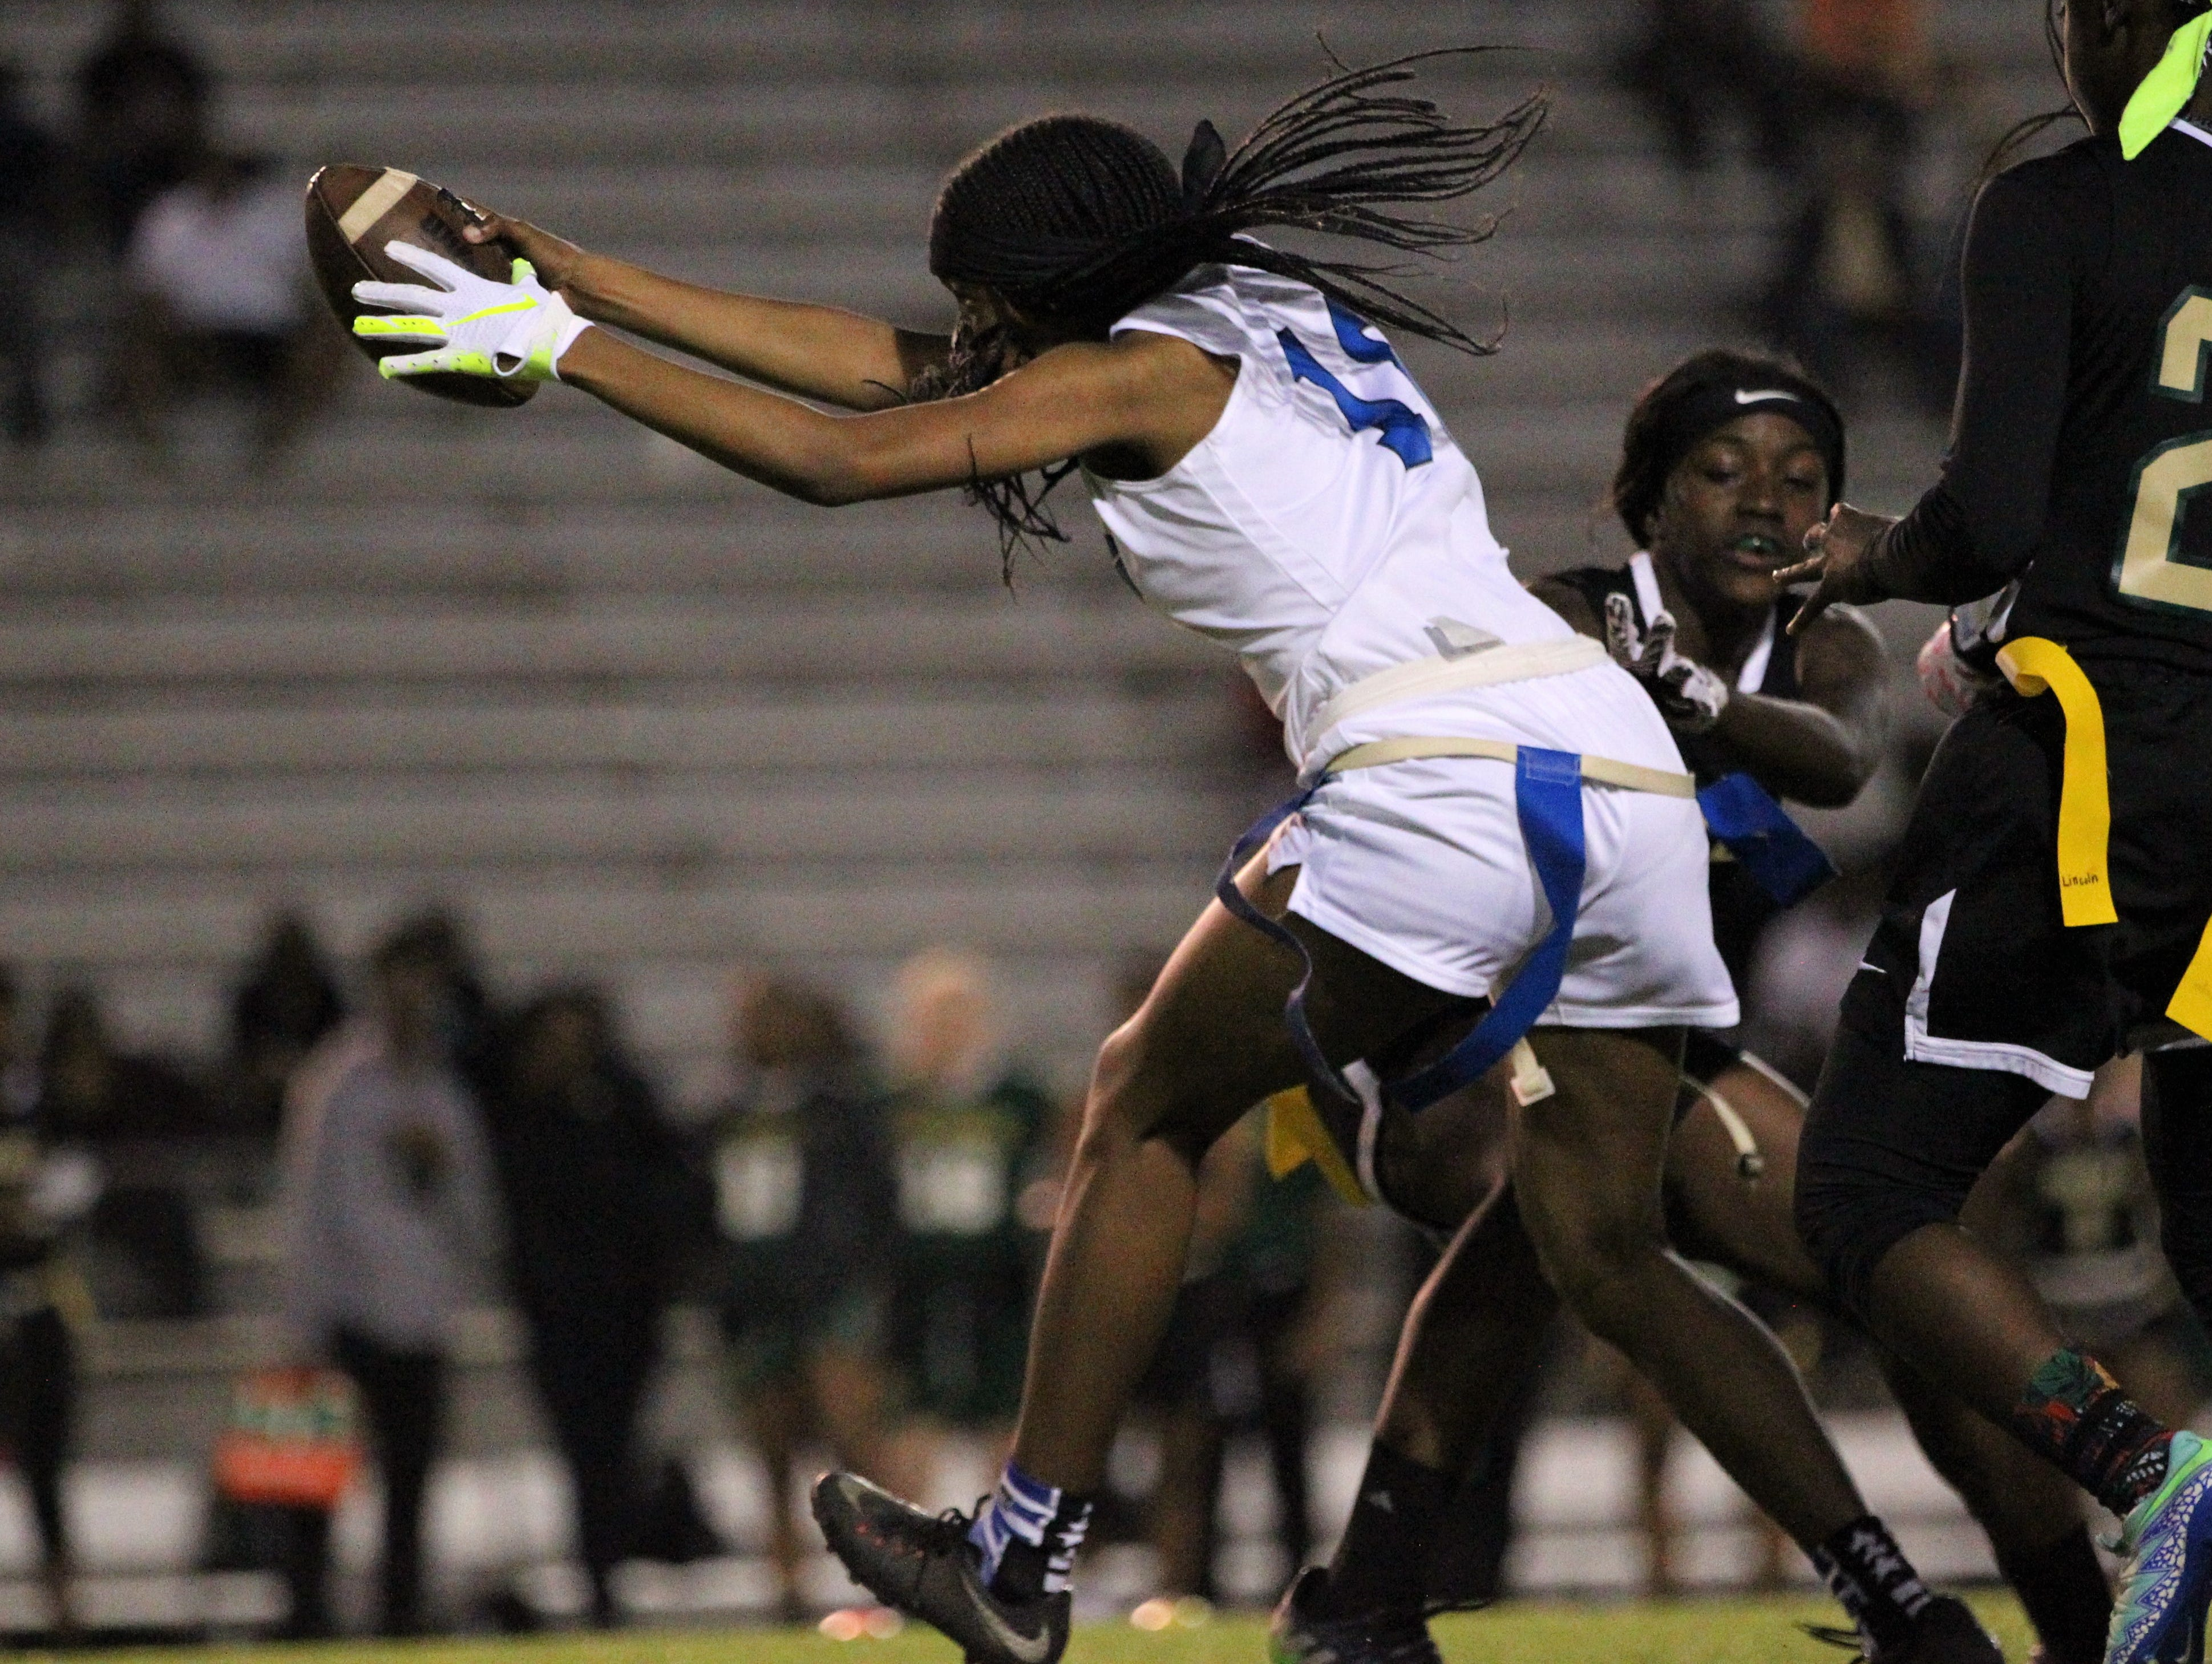 Godby's Gisele Jones reaches for extra yardage before her flag is pulled as Godby's flag football team beat Lincoln 25-6 at Gene Cox Stadium on March 14, 2019.